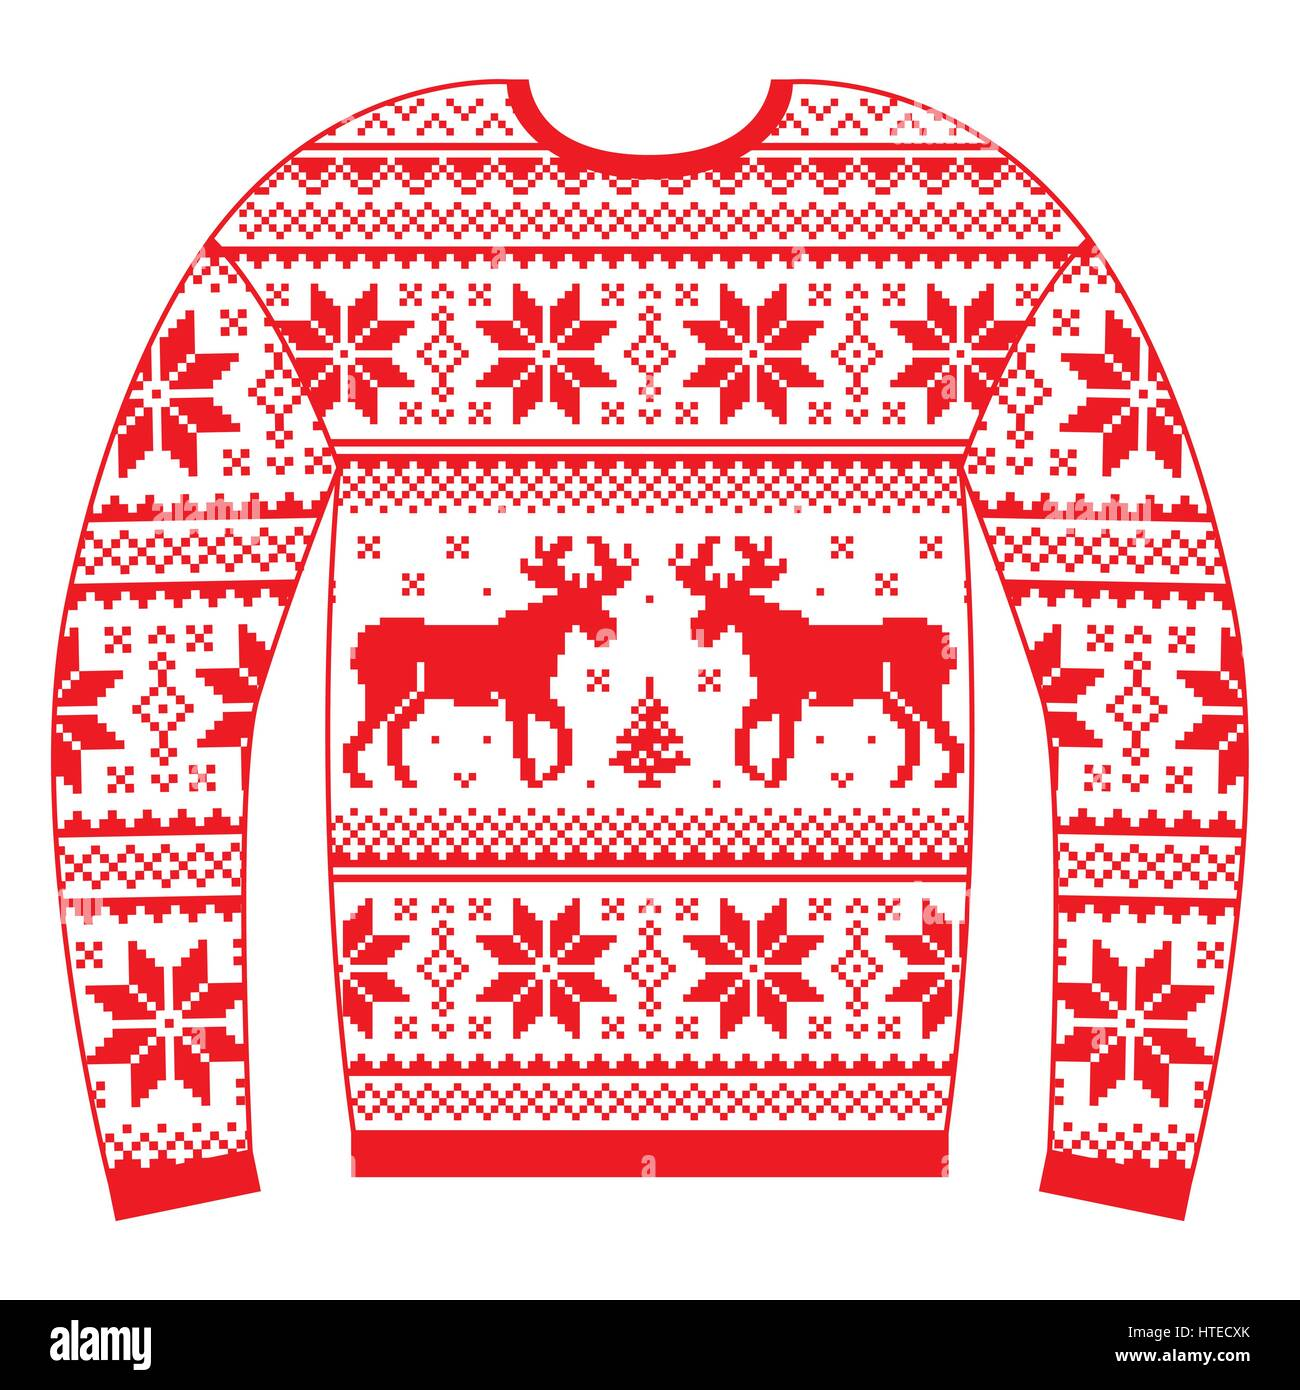 3444daf9f382 Ugly Christmas jumper or sweater with reindeer and snowflakes red pattern